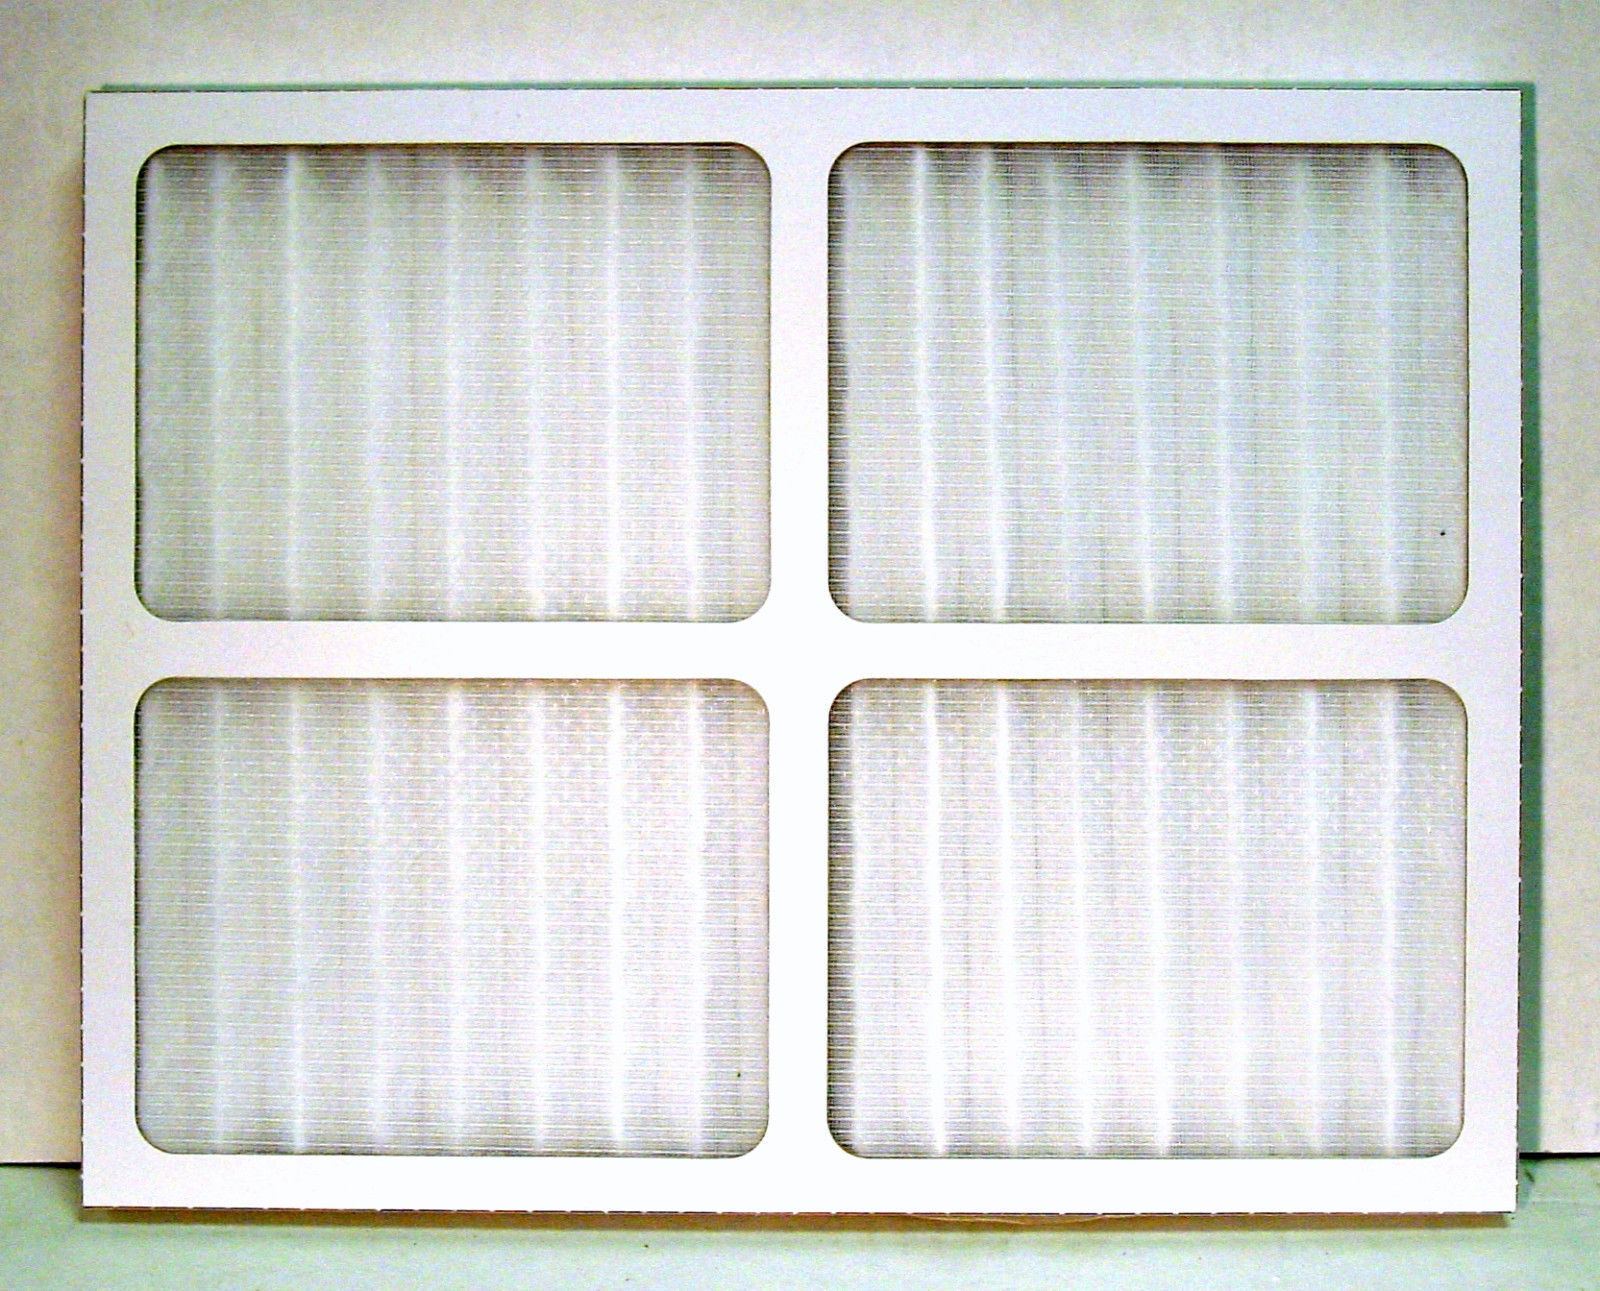 2-PACK Air Filter Hunter 30920~Fits 30050 30055 30065 37065 30075 30080 & 3017